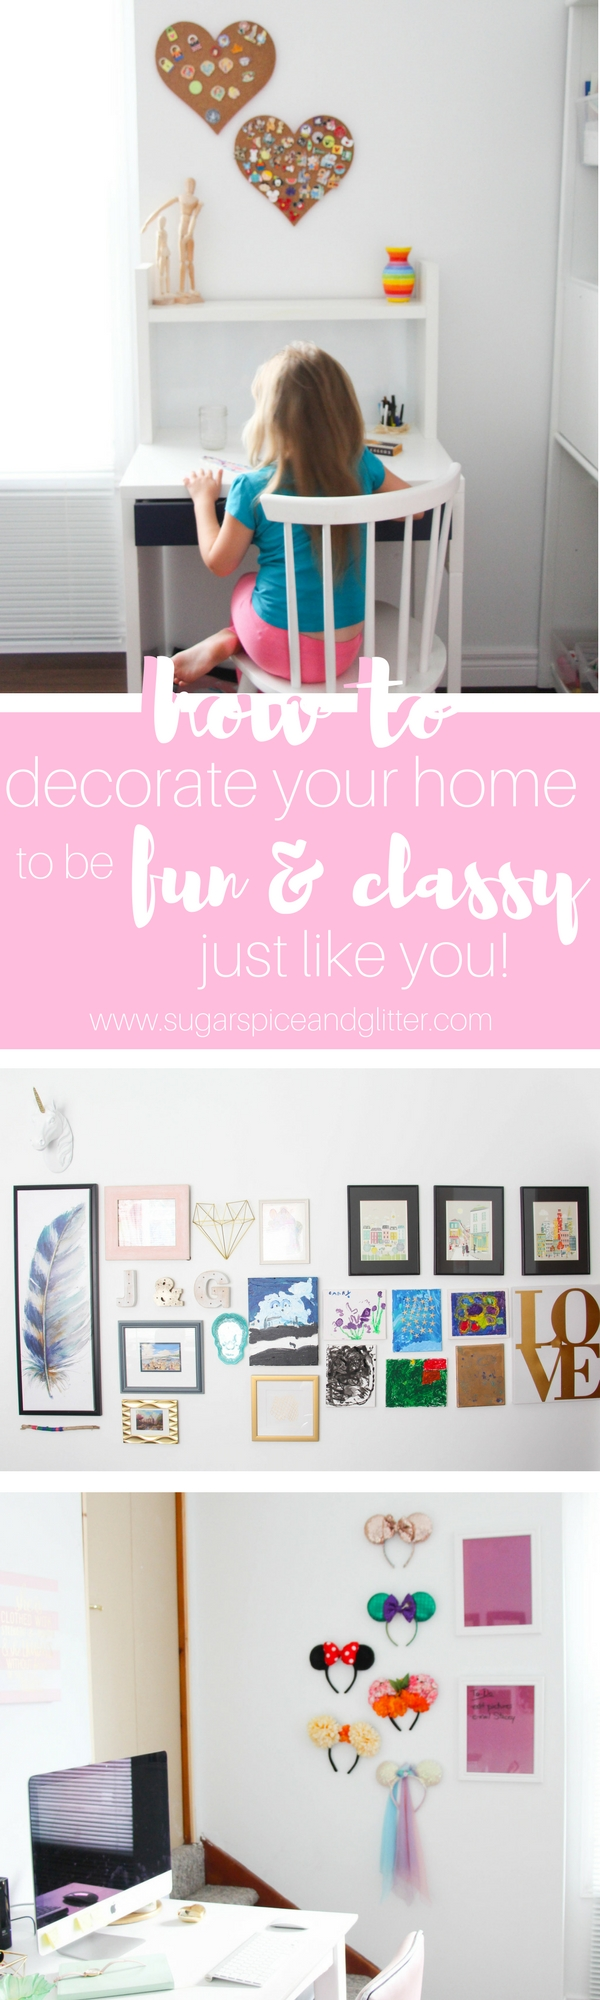 how to decorate your home with fun u0026 class sugar spice and glitter